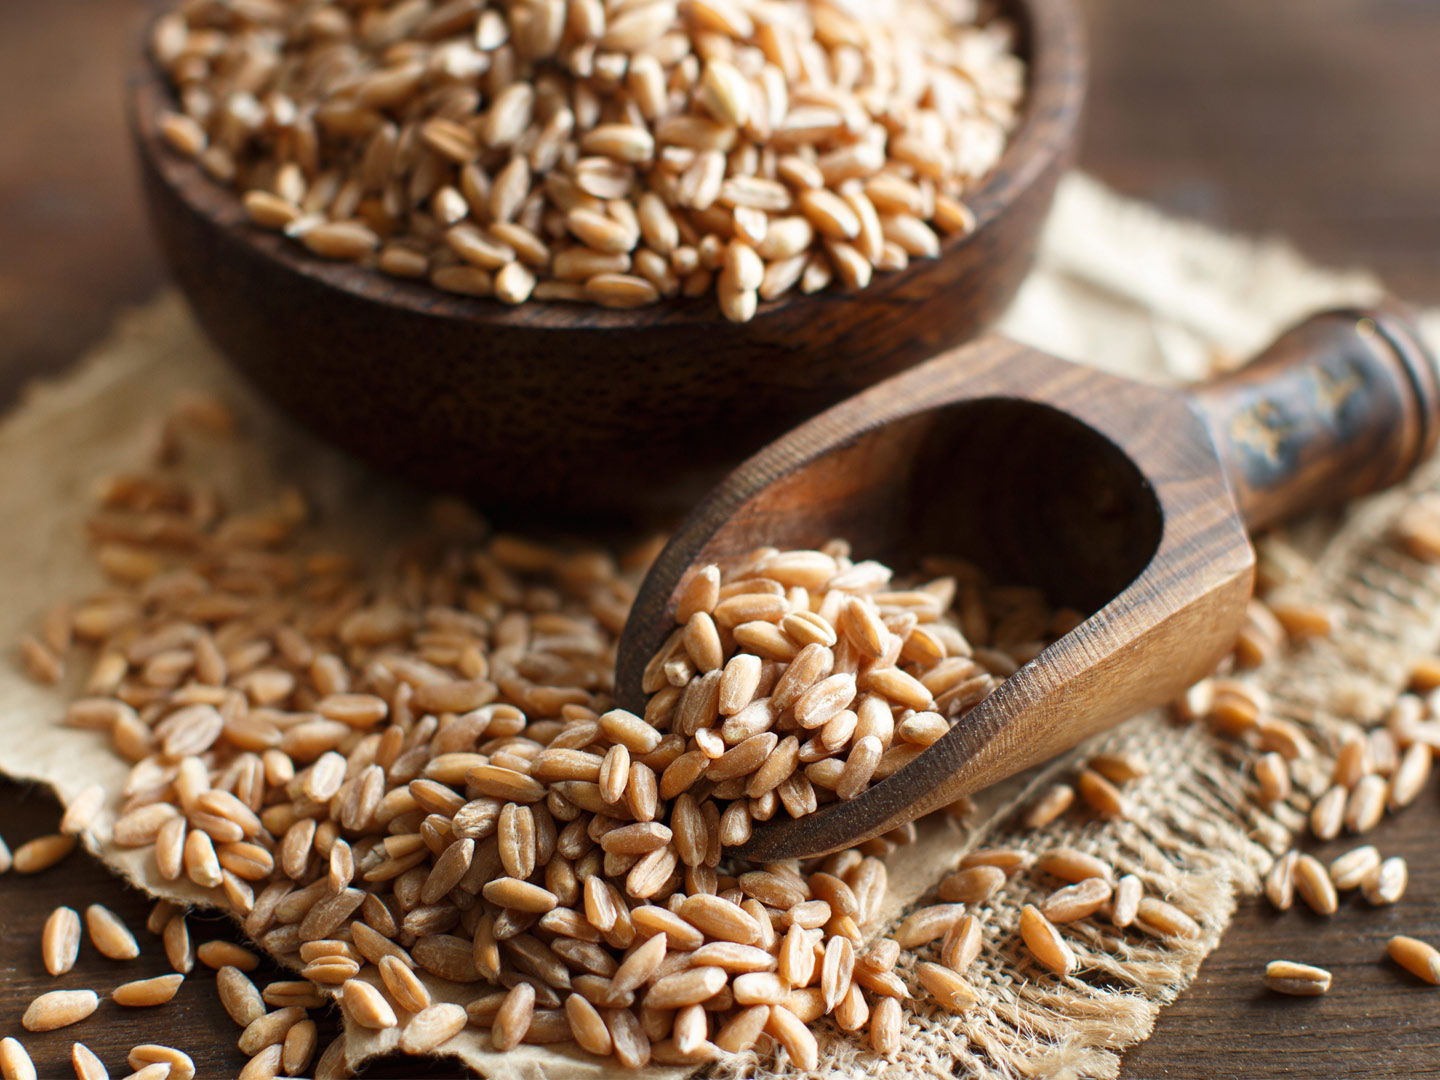 Are Ancient Grains Better? - DrWeil.com